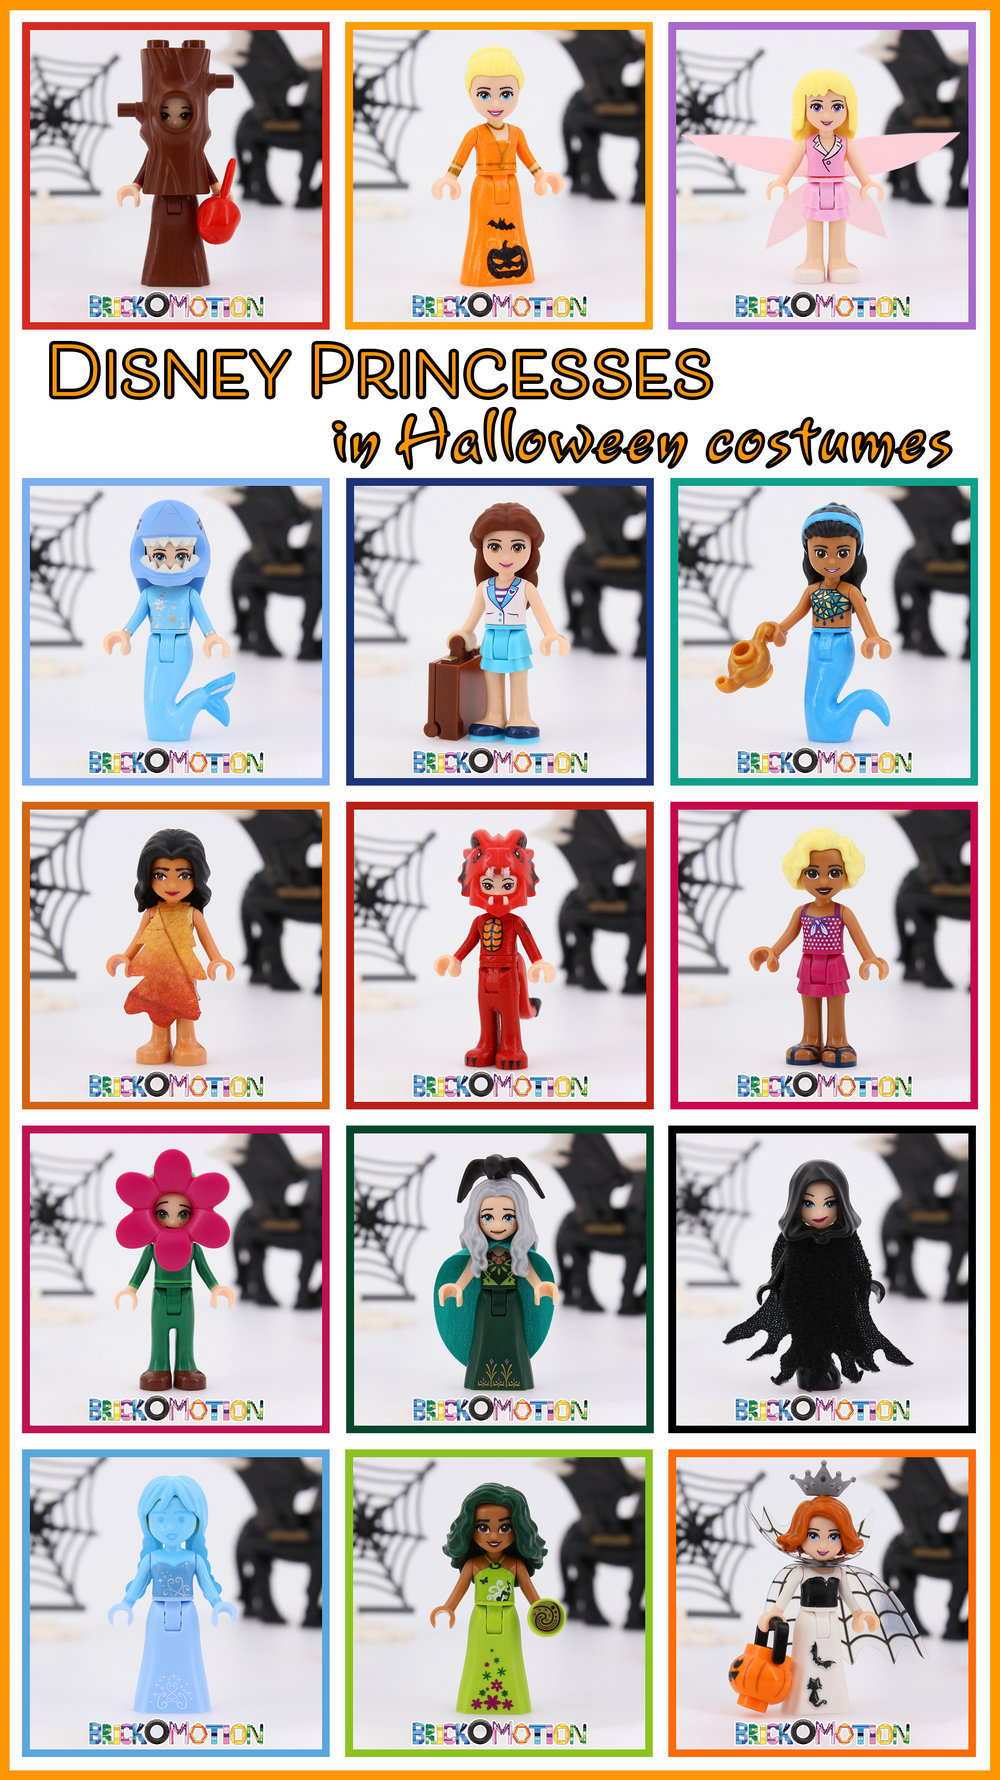 Disney Princesses in Halloween Costumes